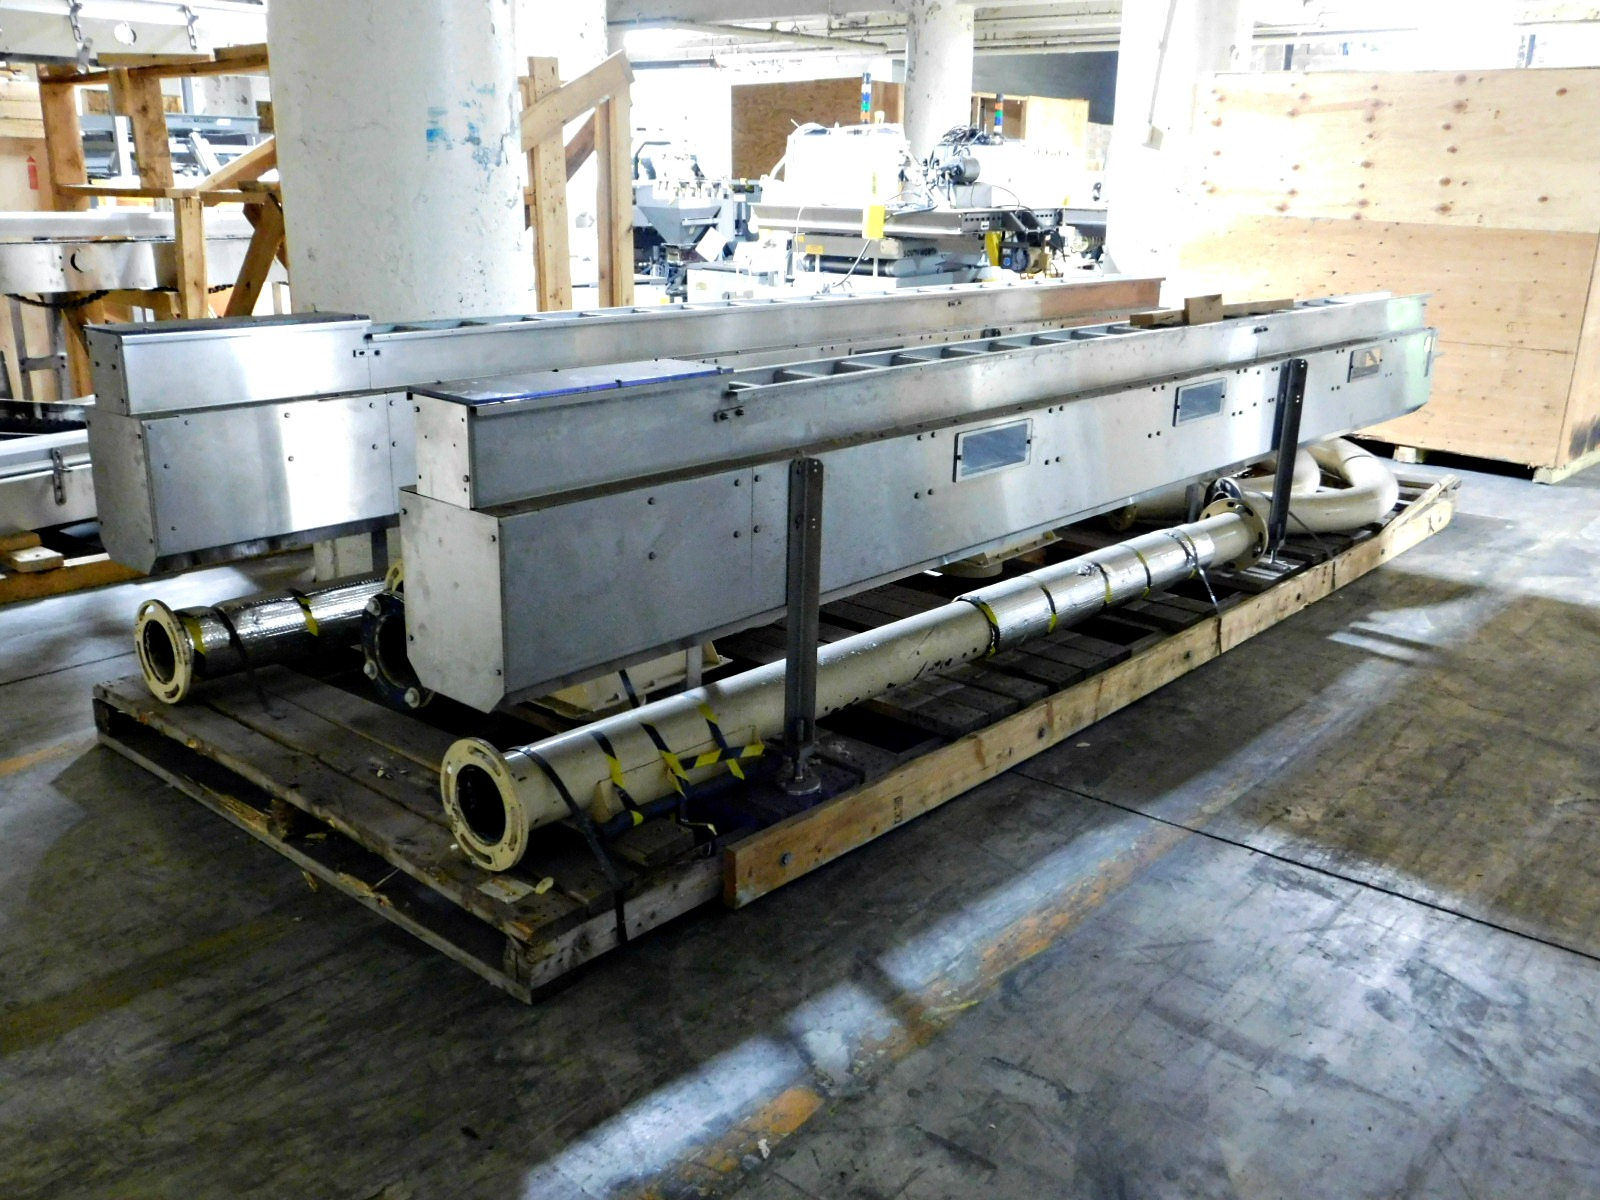 """Lot 61 - Stainless steel conveyor 17' 2"""" x 5"""" qty 2 & pipes :equipment located at Clark Logistic Services 